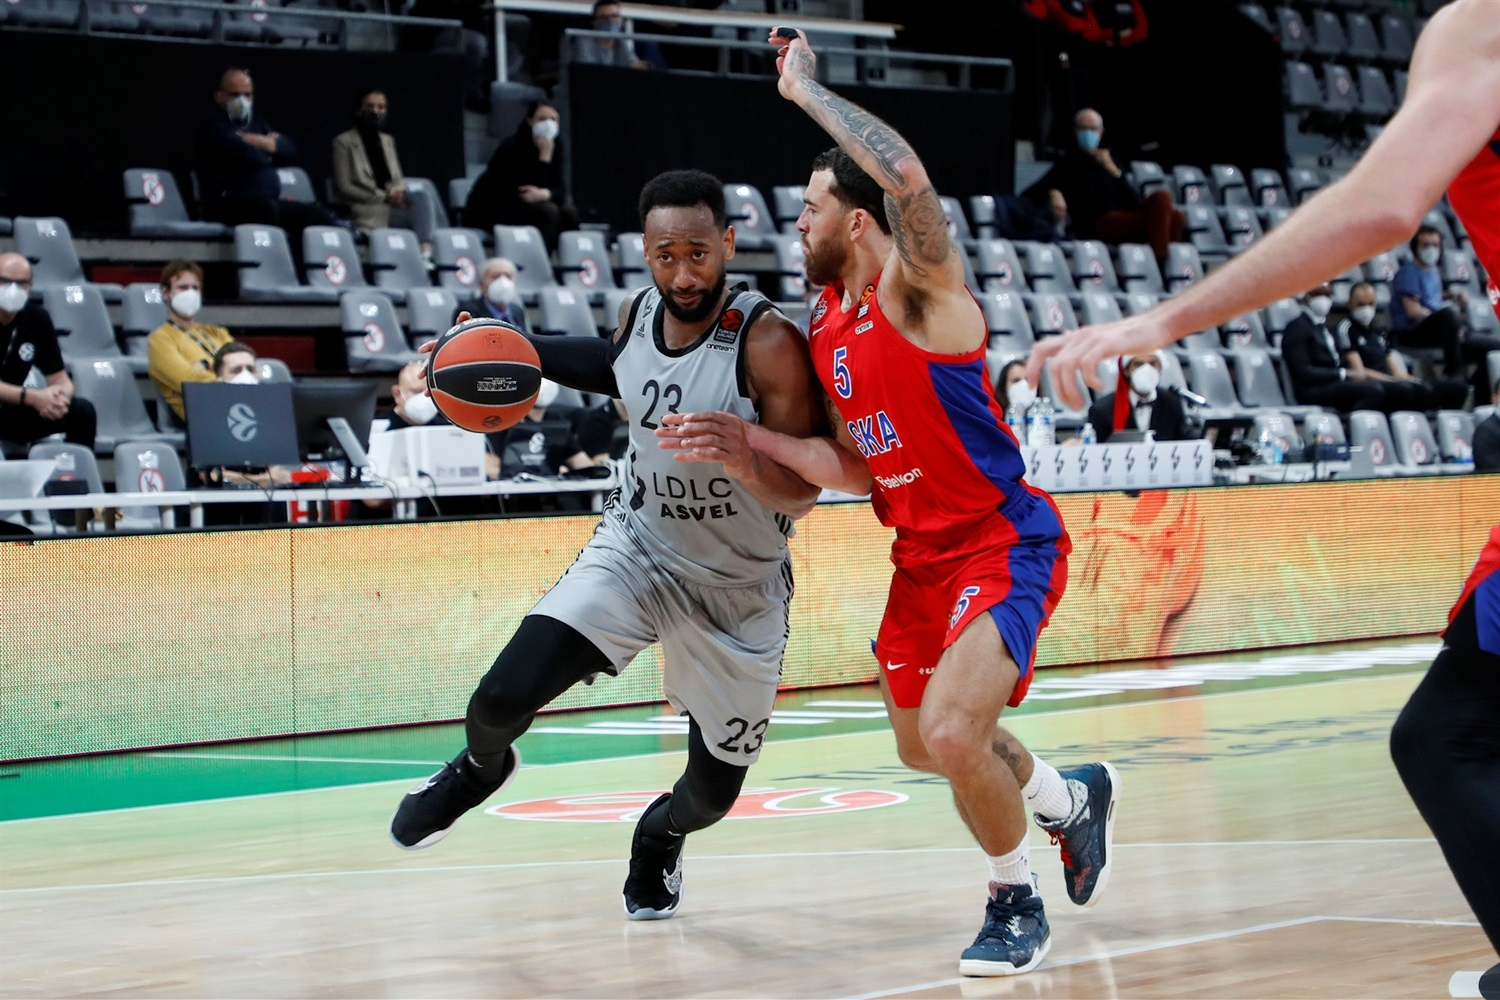 David Lighty - LDLC ASVEL Villeurbanne - EB20